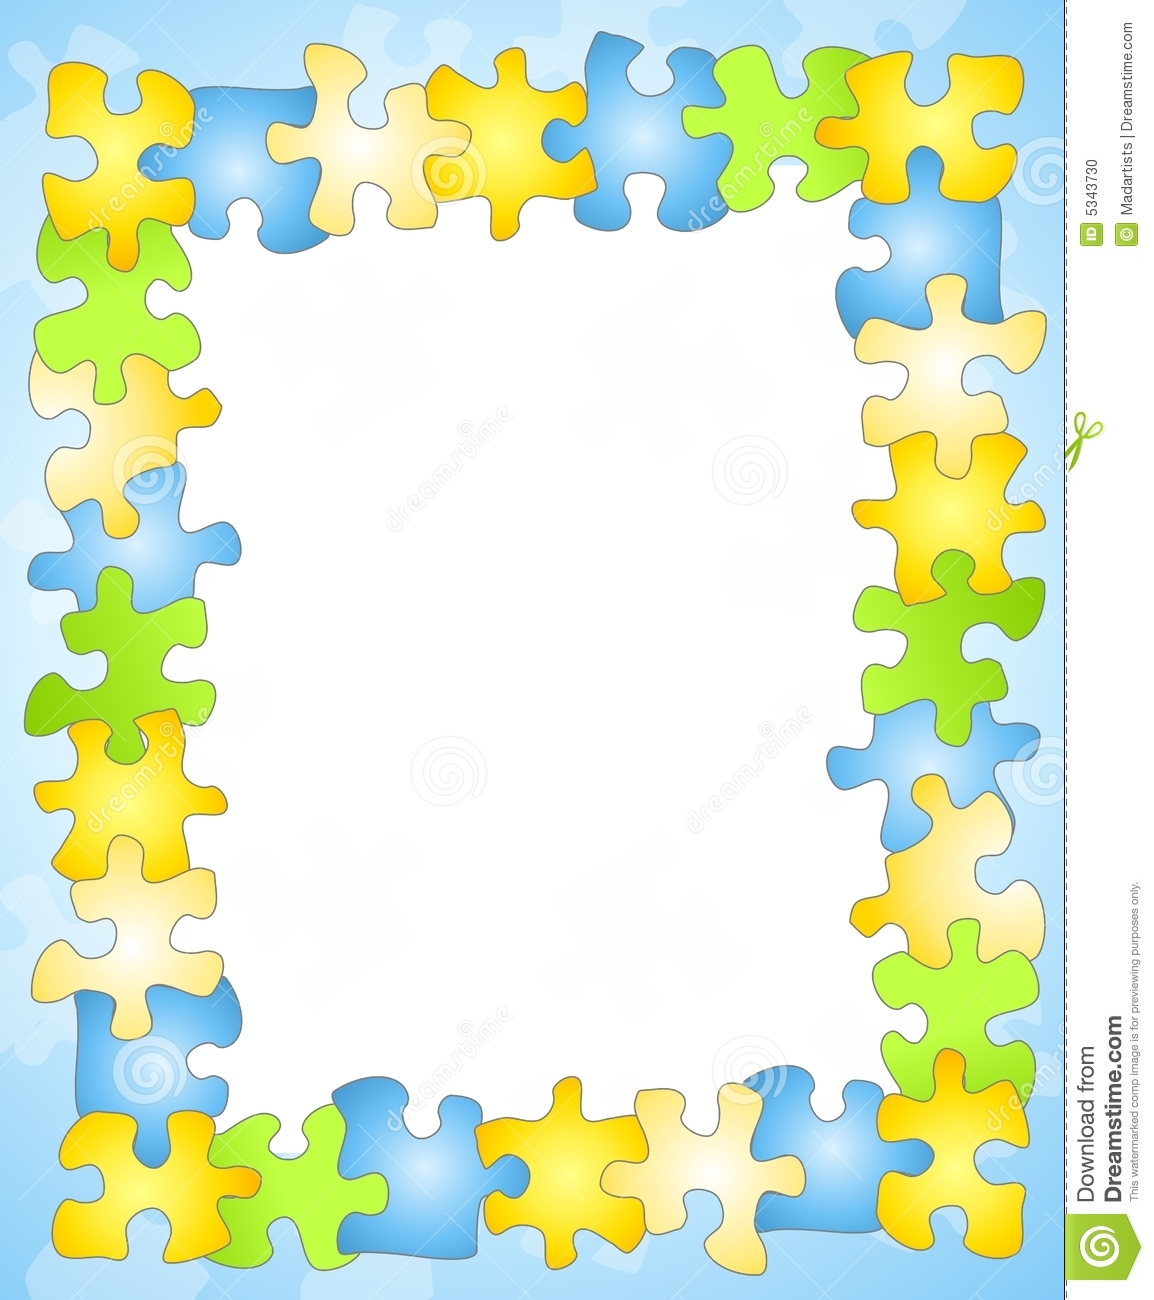 Puzzle Frame Border Background Stock Illustrations – 440 Puzzle ...